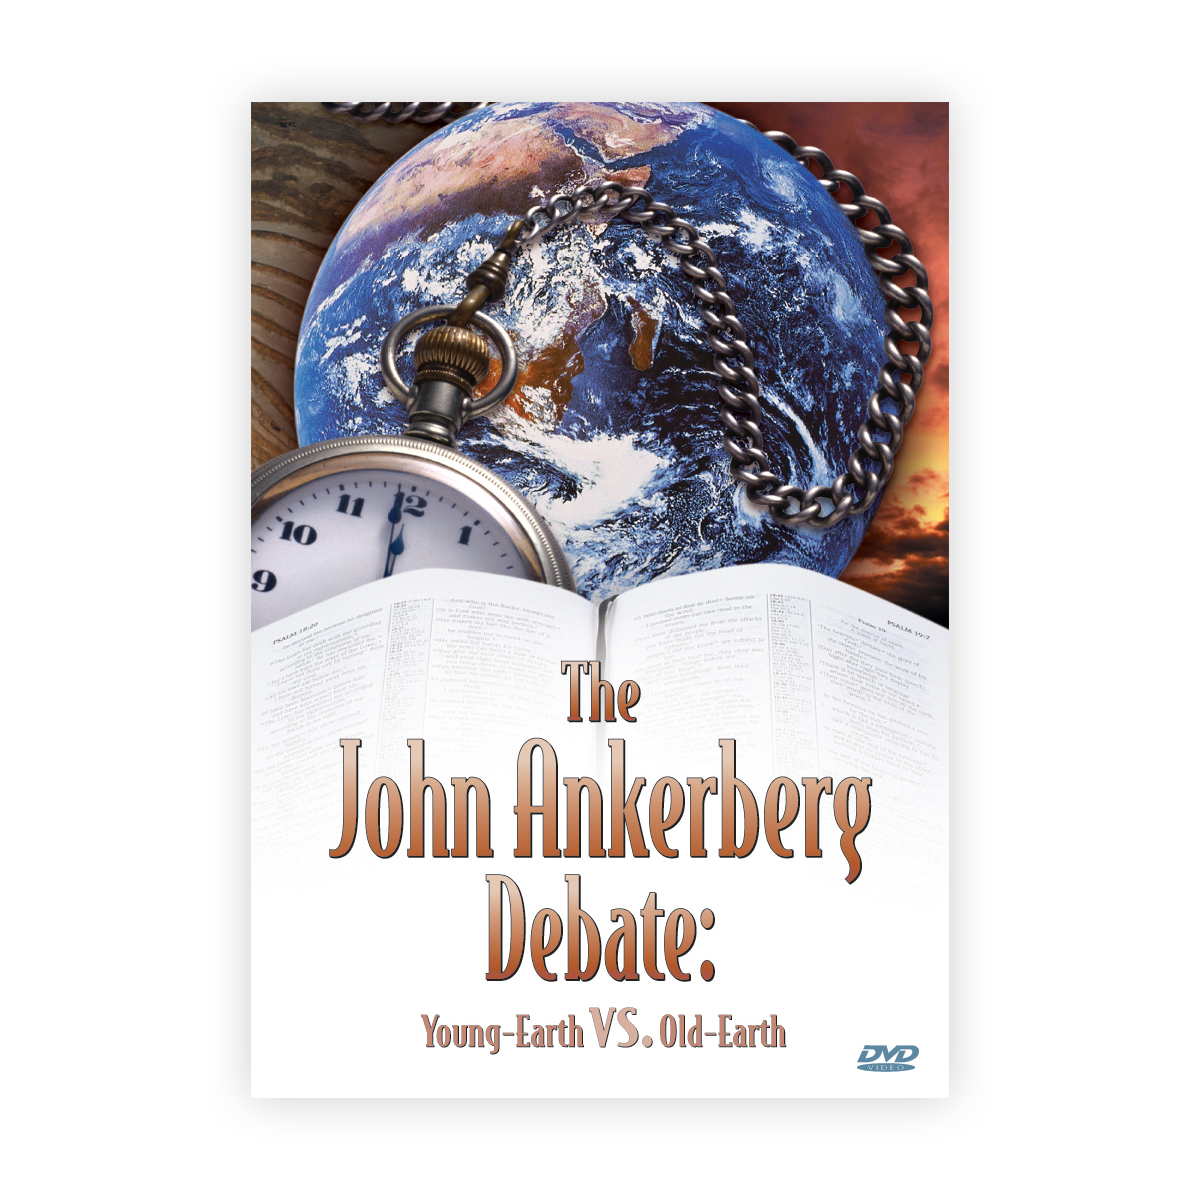 The John Ankerberg Debate: Young-Earth vs. Old-Earth Image